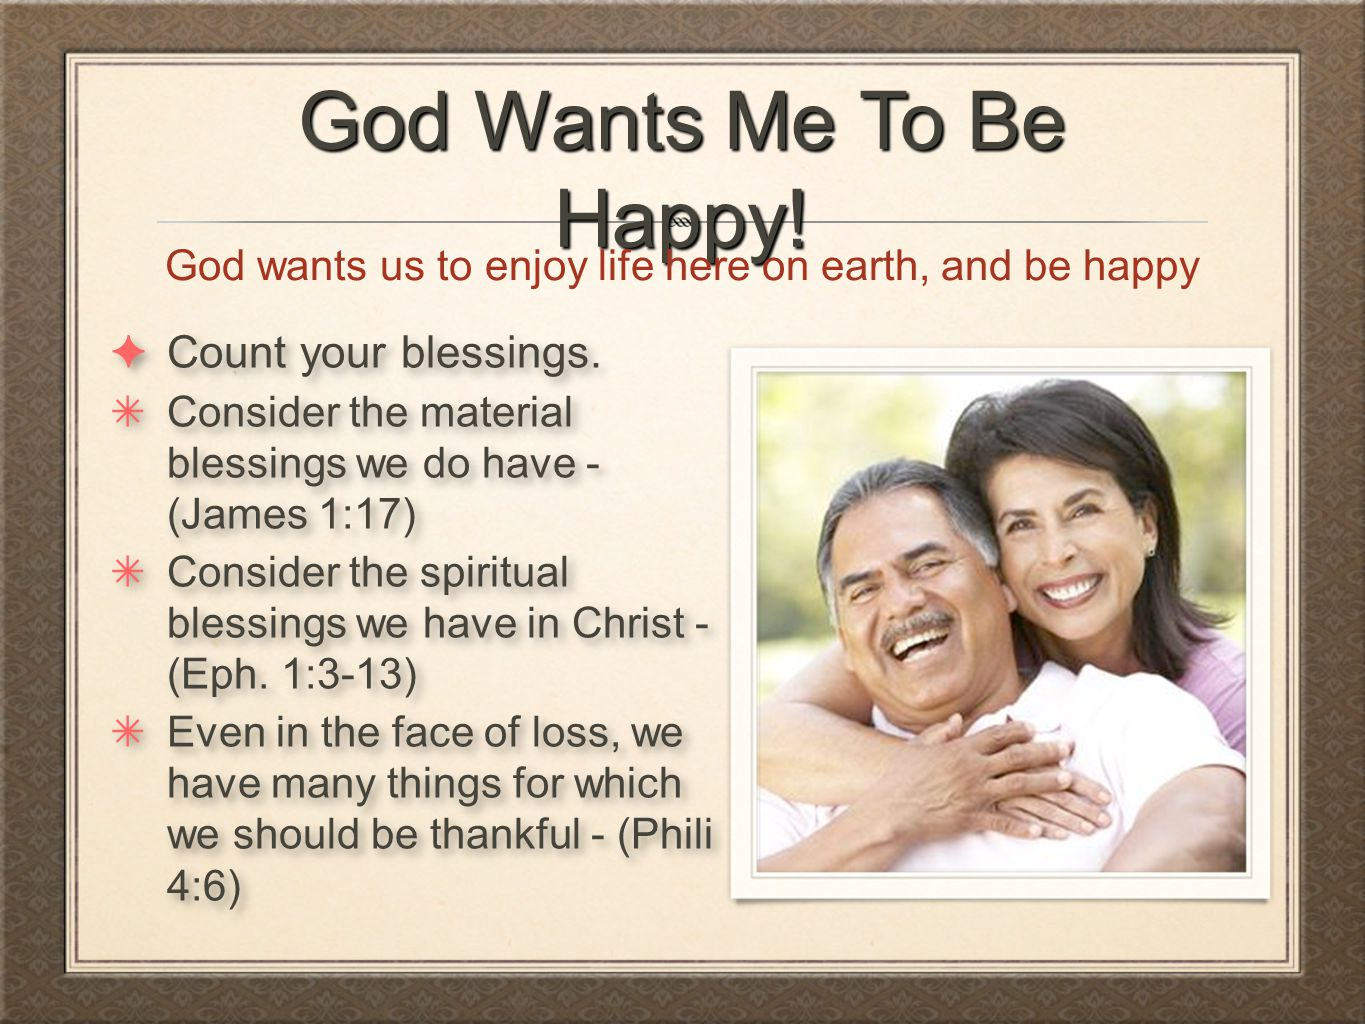 God wants us to enjoy life here on earth, and be happy